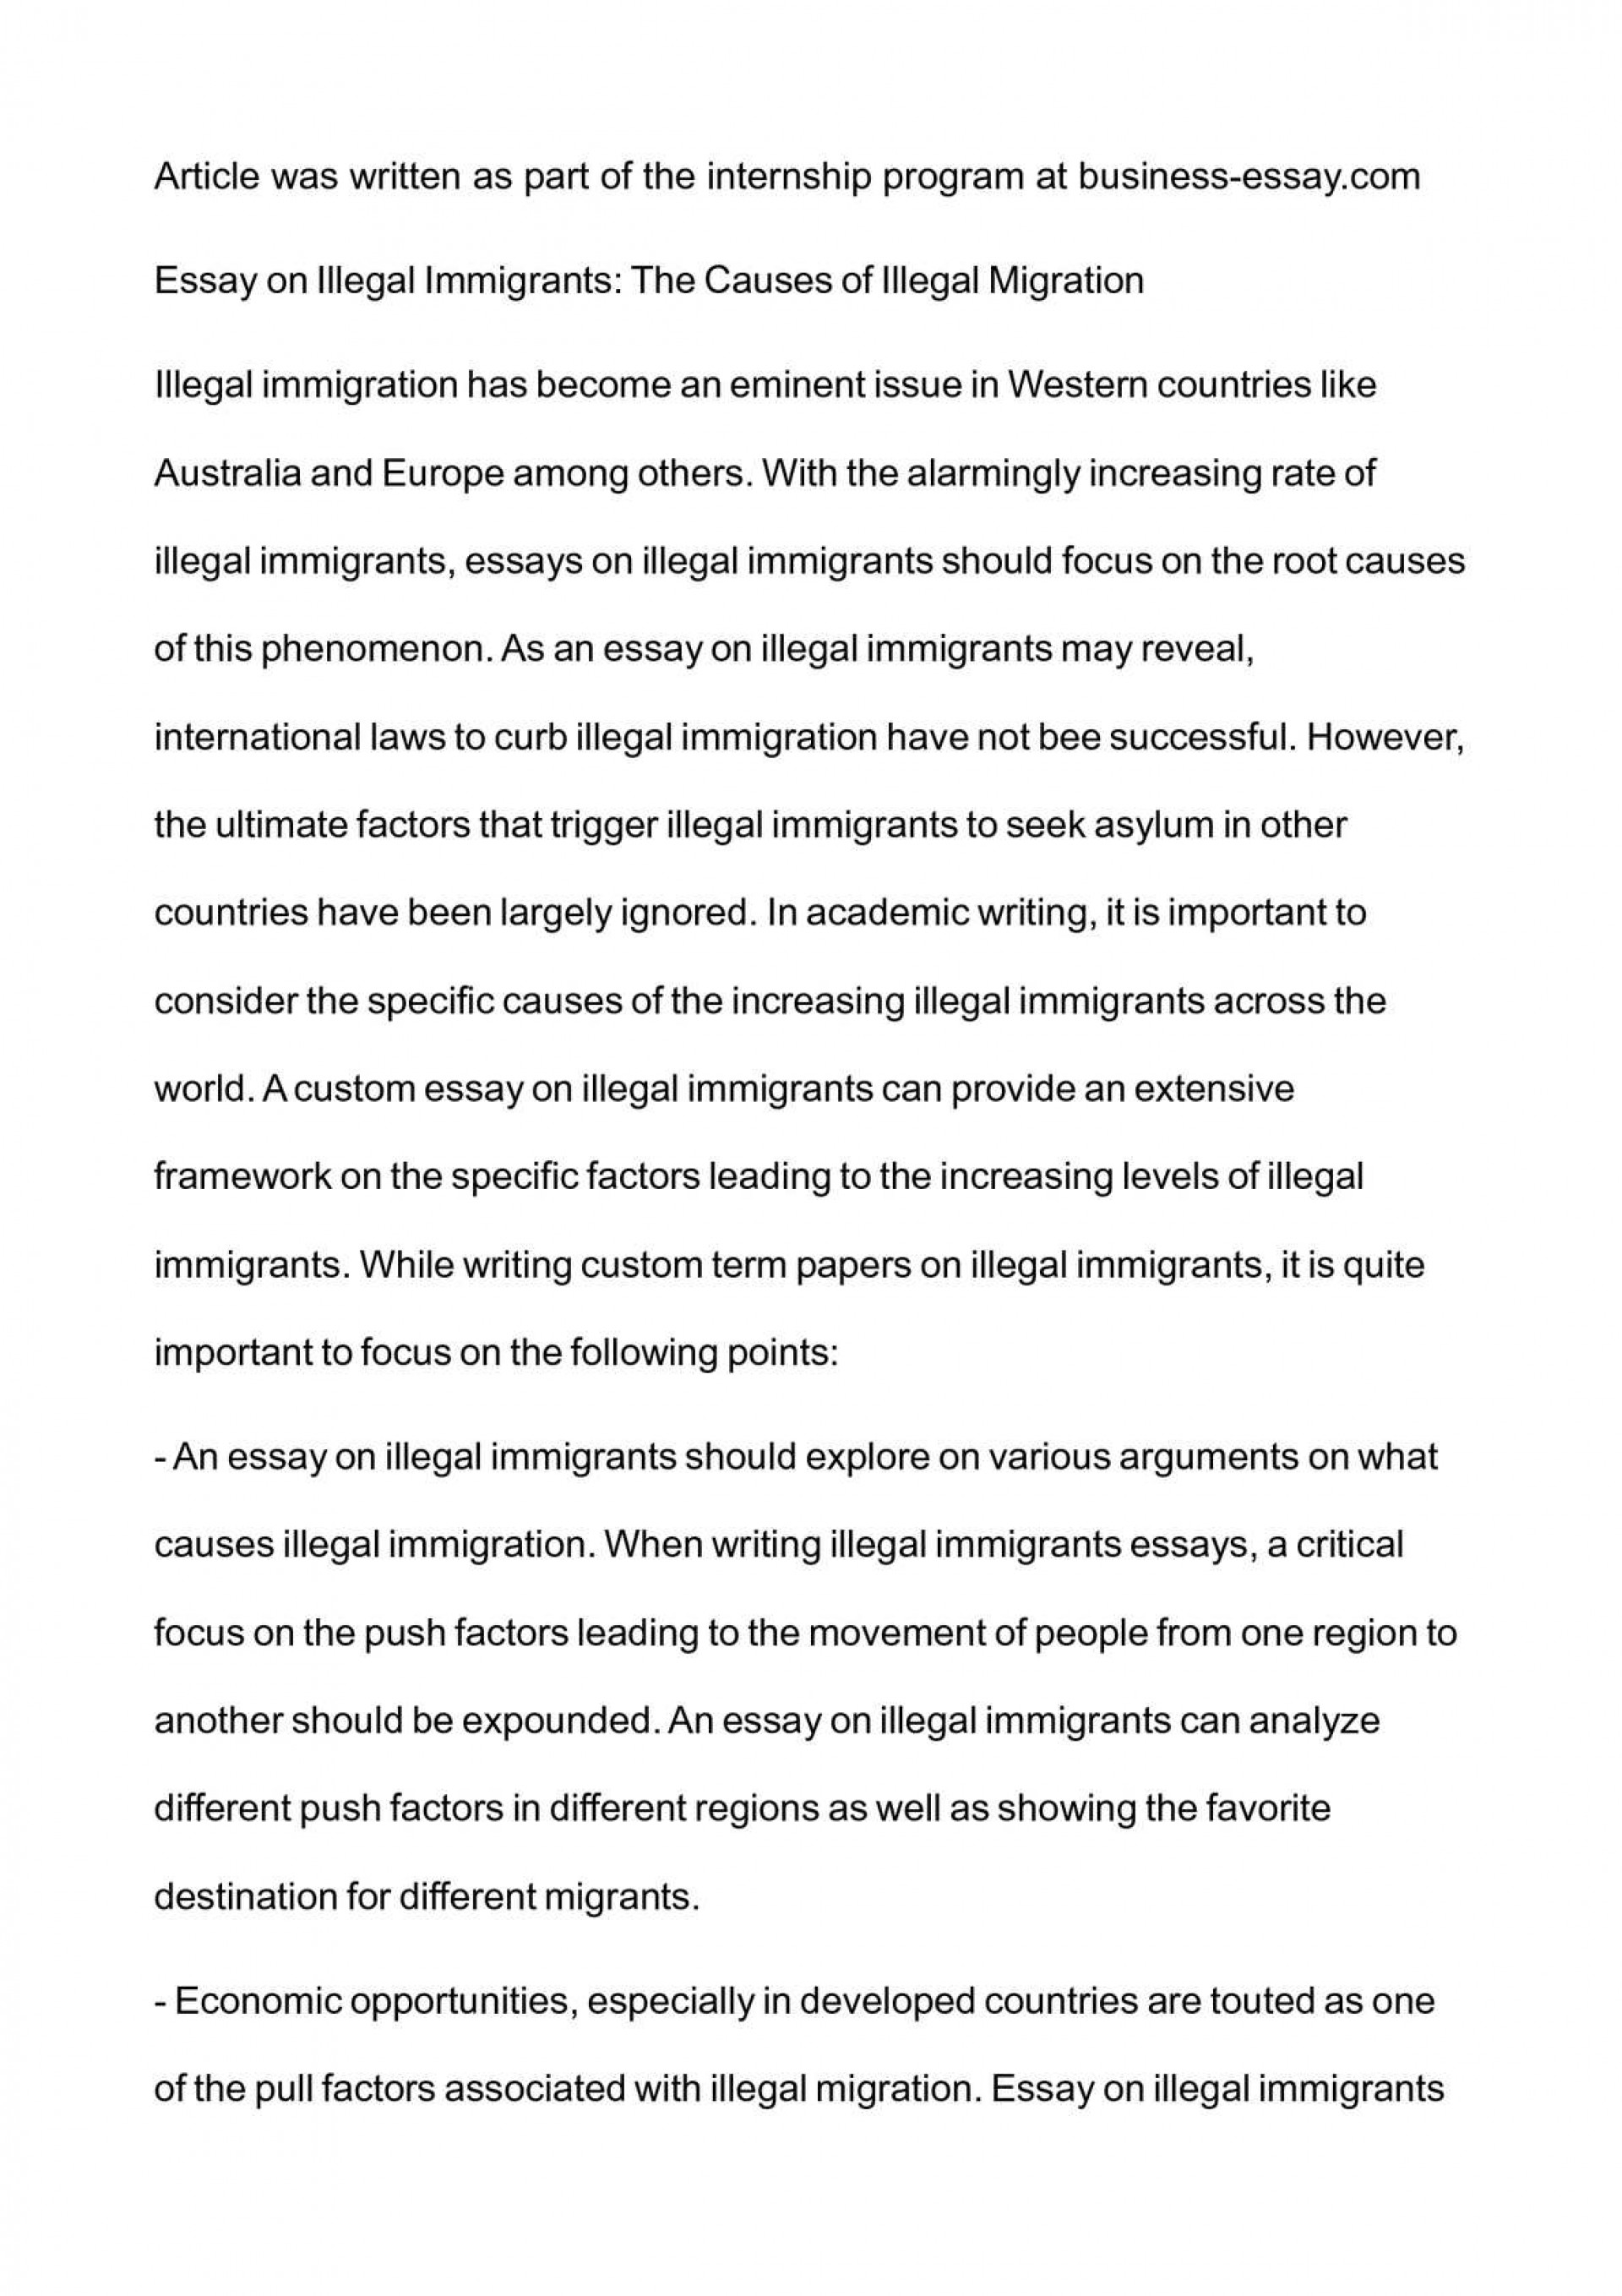 001 Essay Example Illegal Immigration Argumentative On P Against Thesis Pro Outline Stunning Topics Paper Title 1920